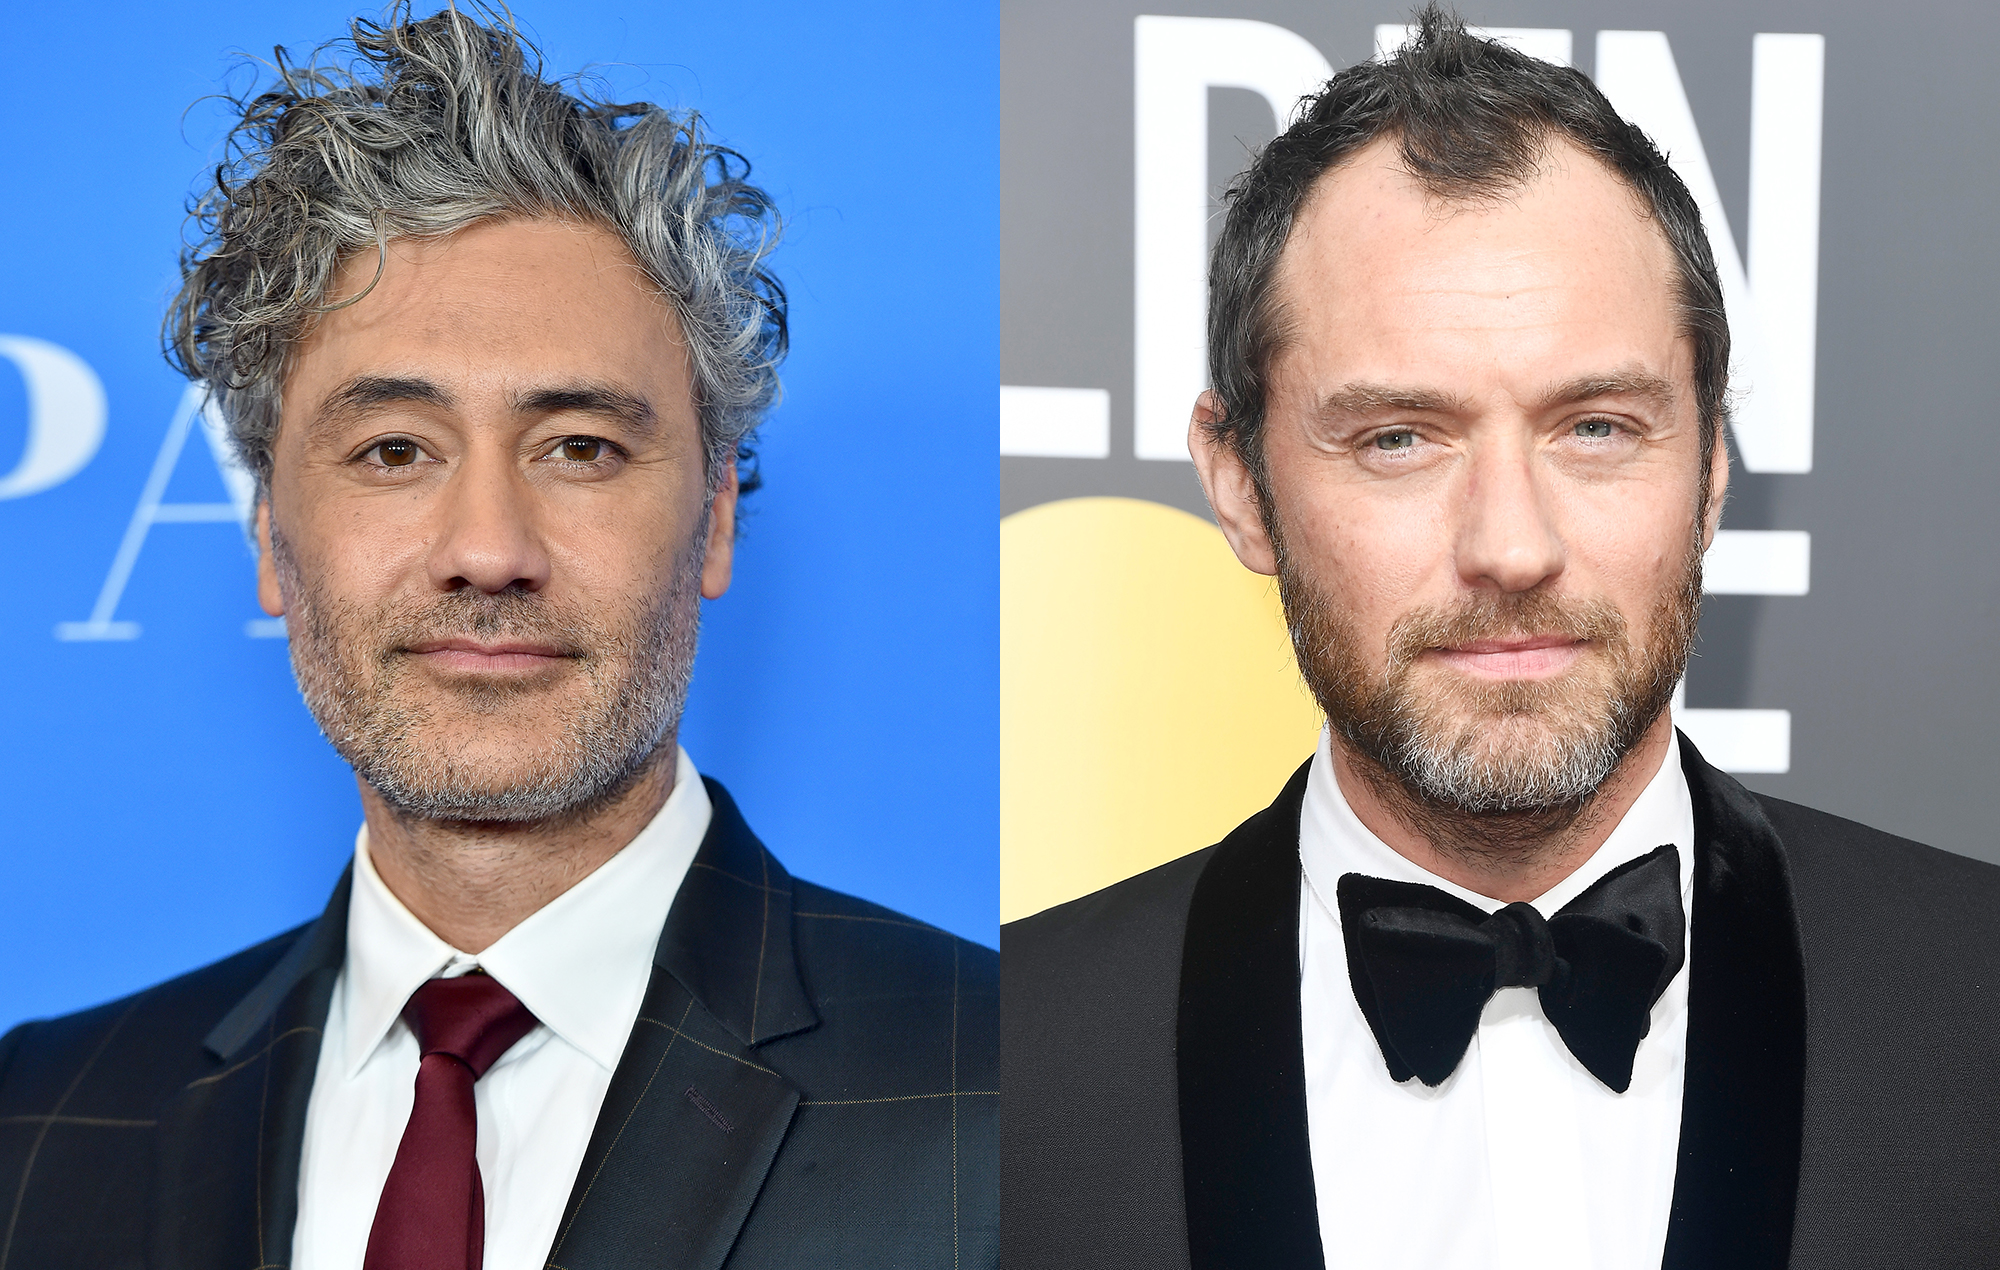 'The Auteur': Taika Waititi's gonzo horror-comedy series starring Jude Law